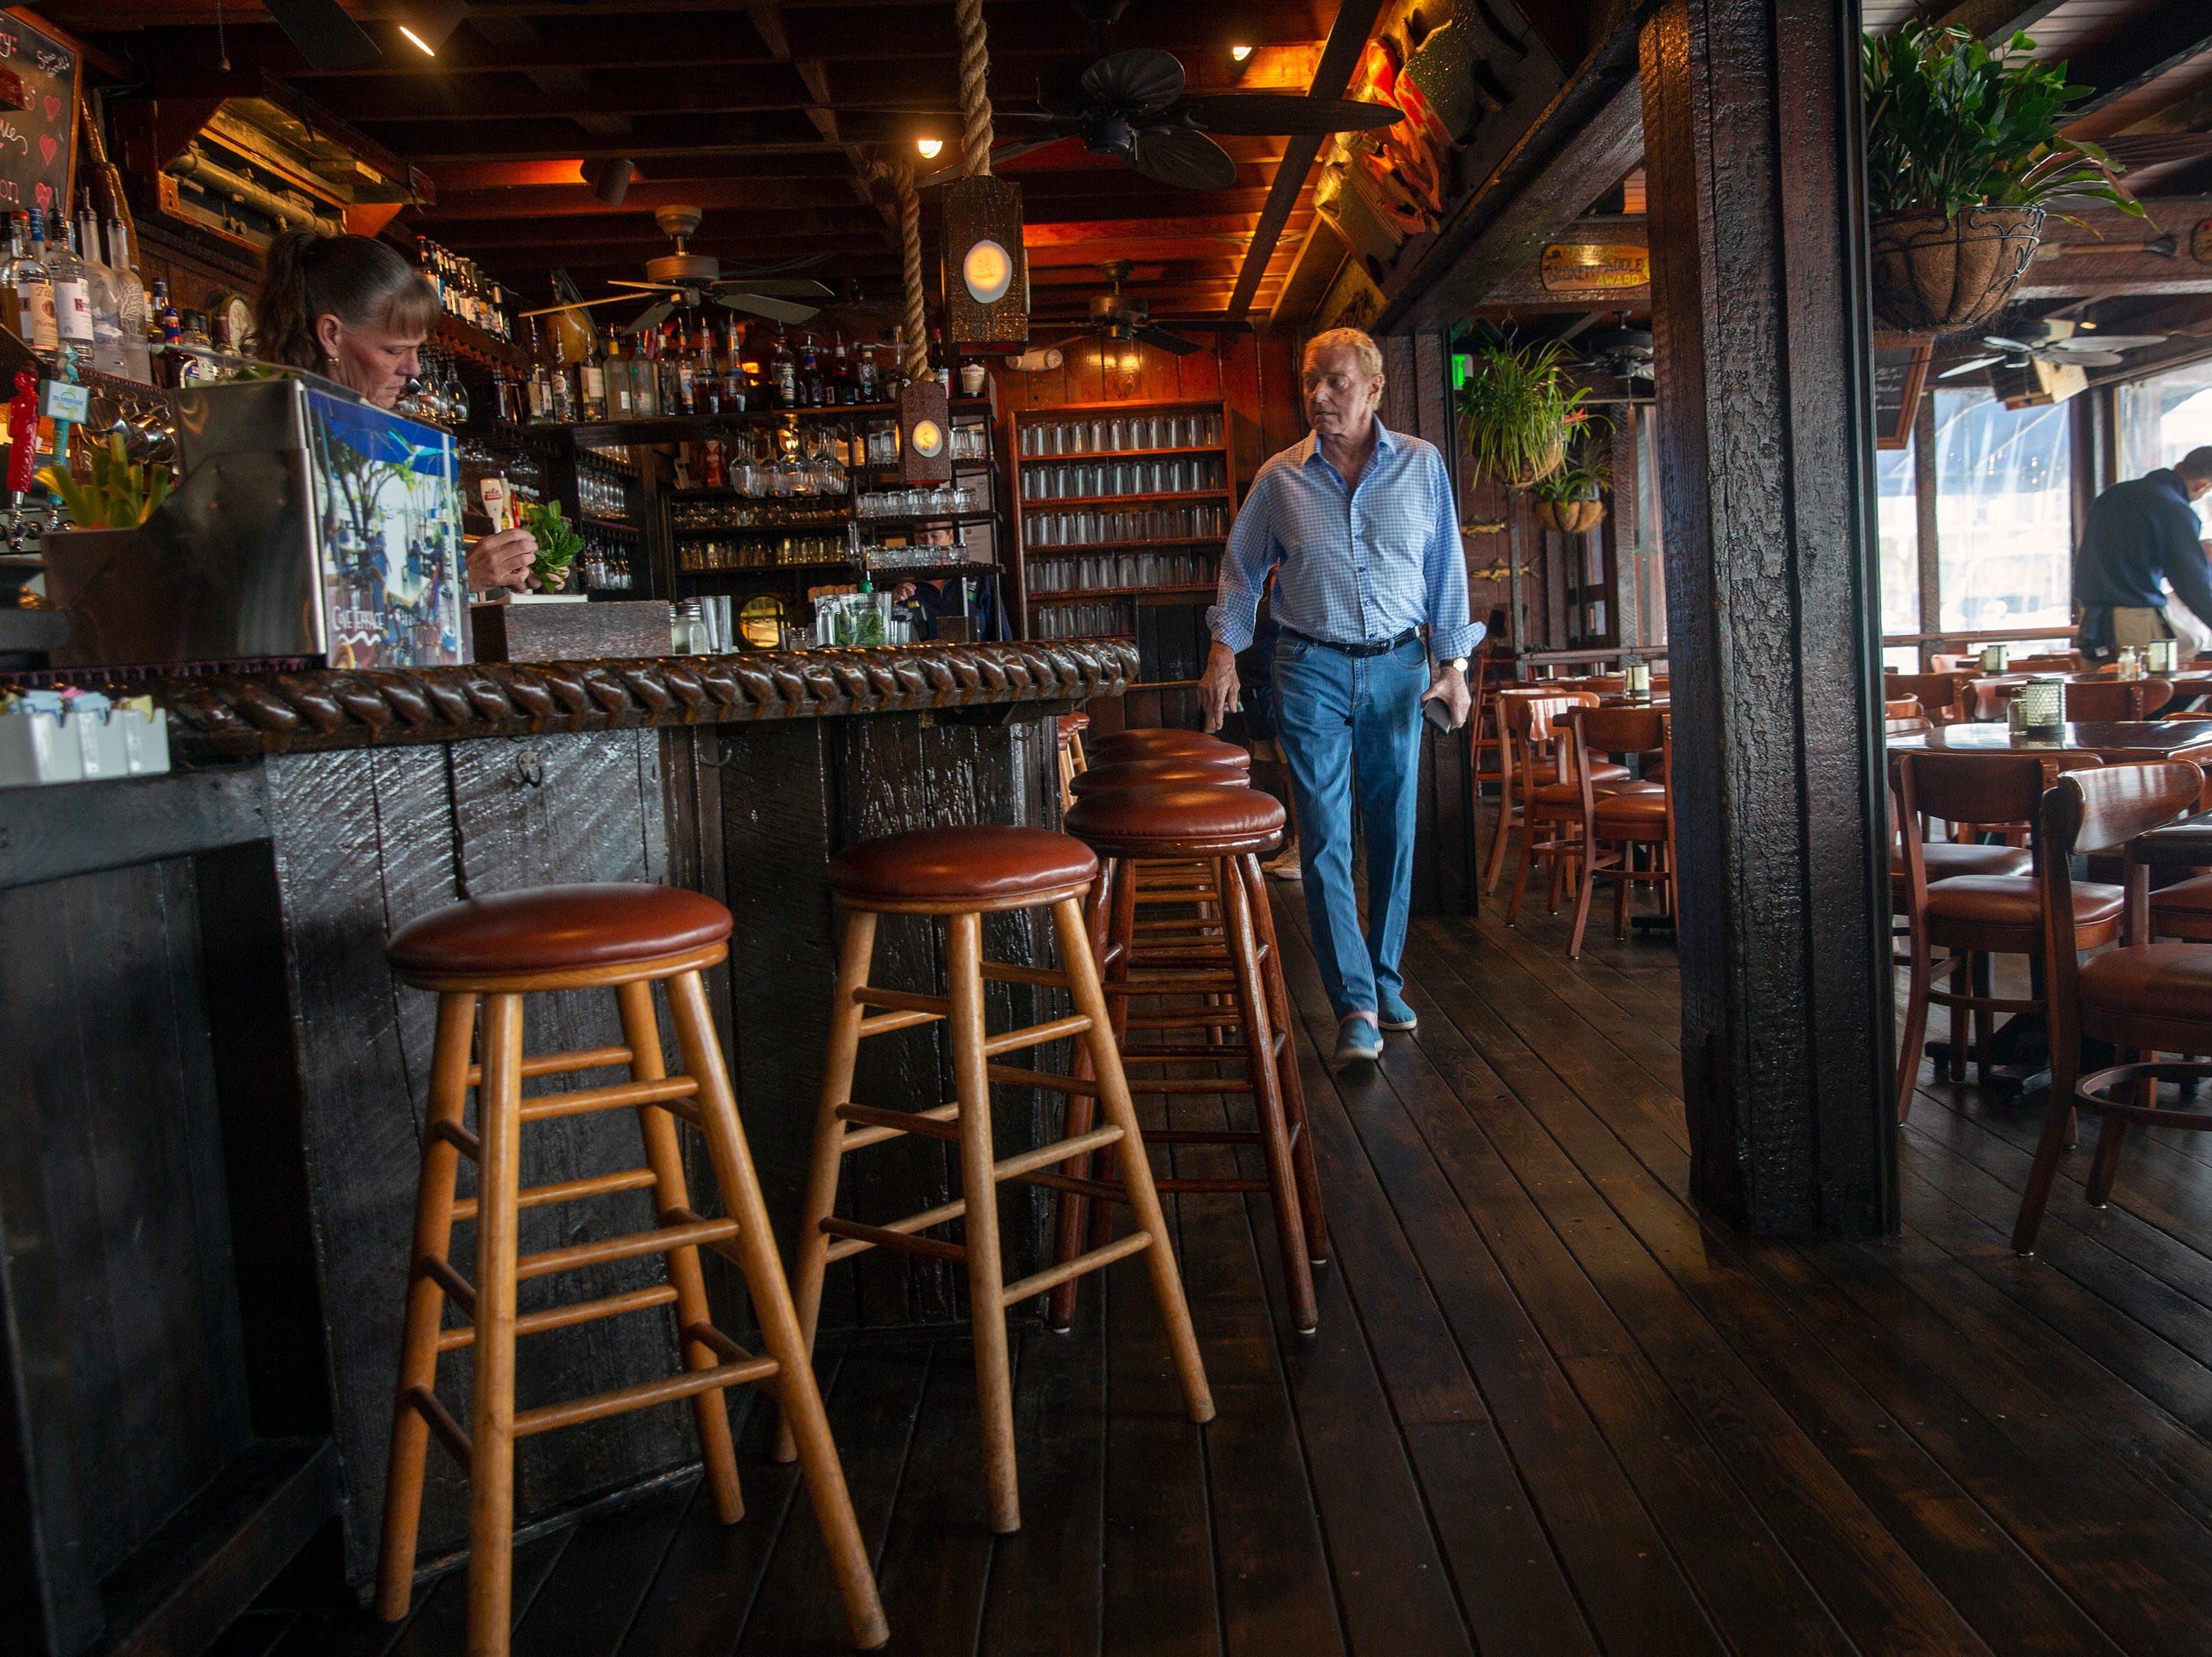 Vin Depasquale, the former owner of The Dock restaurant walks along the restaurant's bar, Wednesday, Feb. 13, 2019, at The Dock restaurant in Naples.